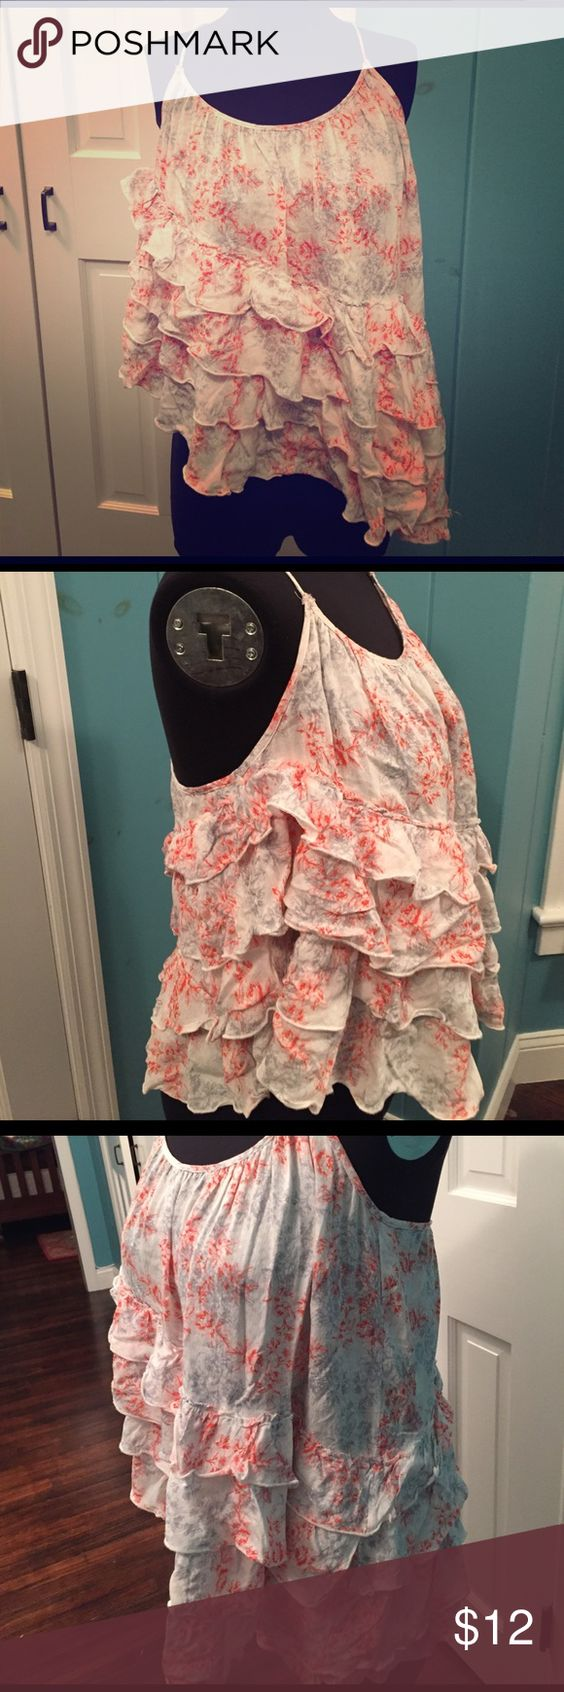 Free people floral asymmetrical ruffle top M So cute. Never worn. Crisscross straps, adjustable. Layers of ruffles. Longer on one side. Free People Tops Camisoles